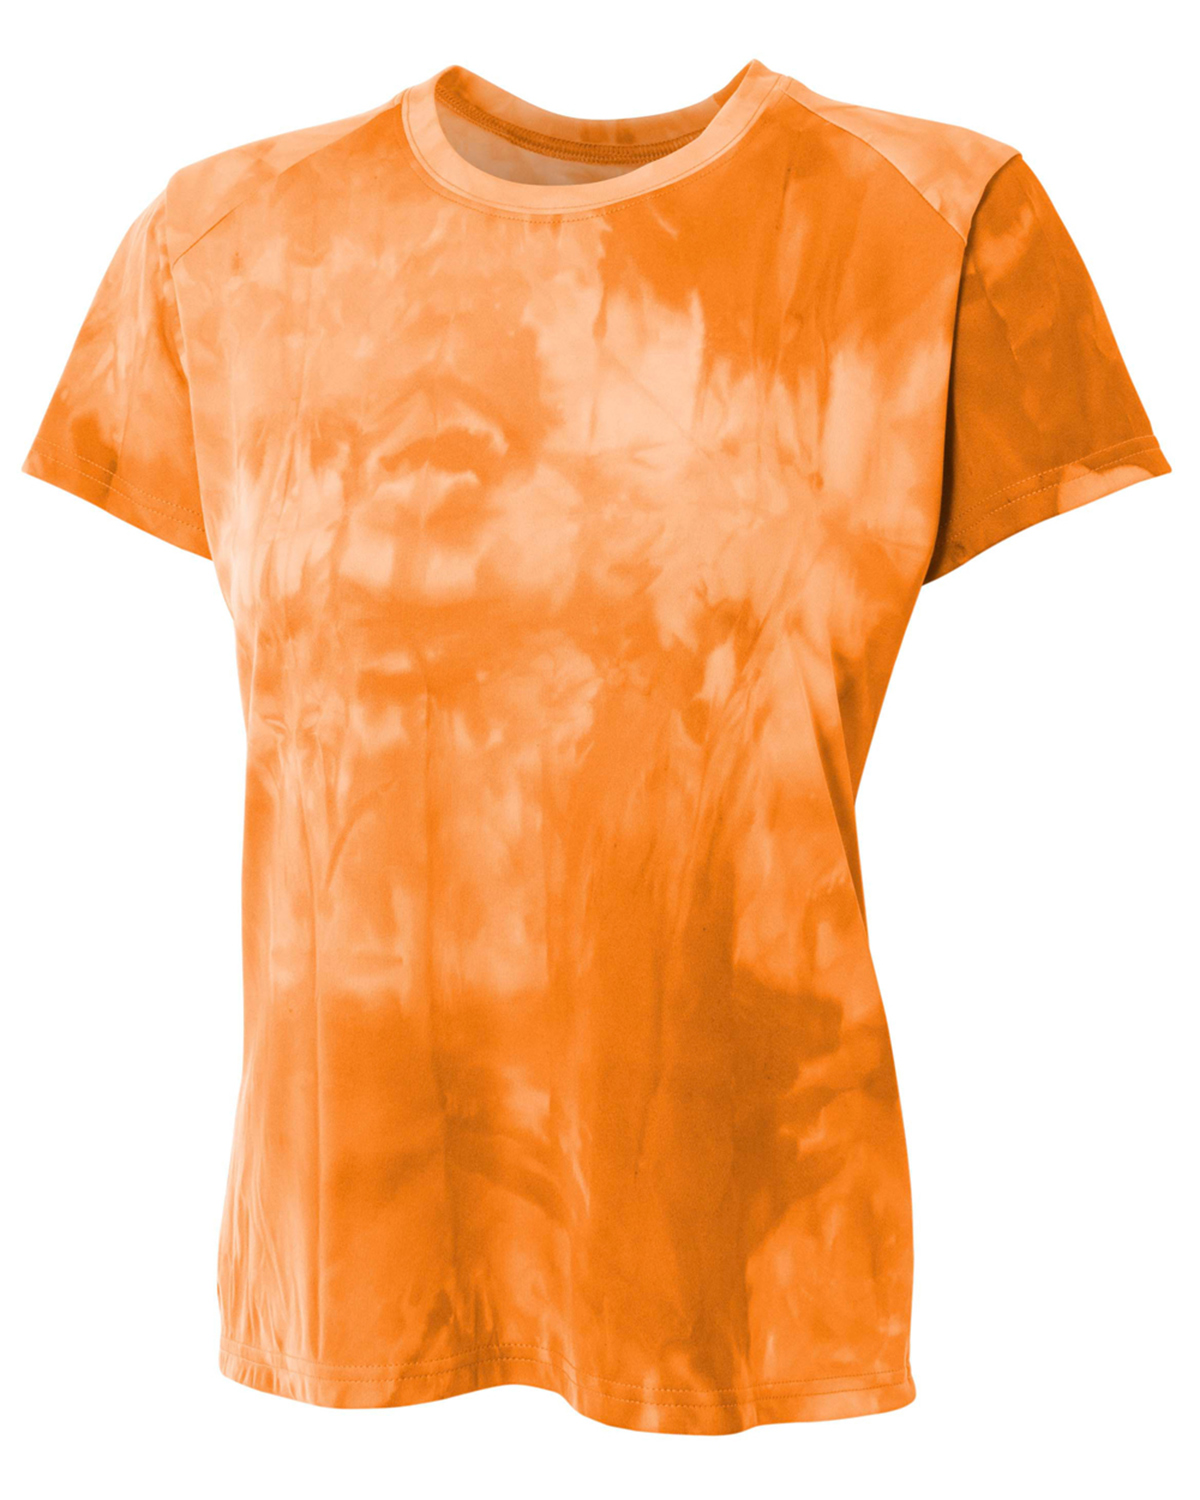 A4 Drop Ship NW3295 - Ladies' Cloud Dye Tech T-Shirt